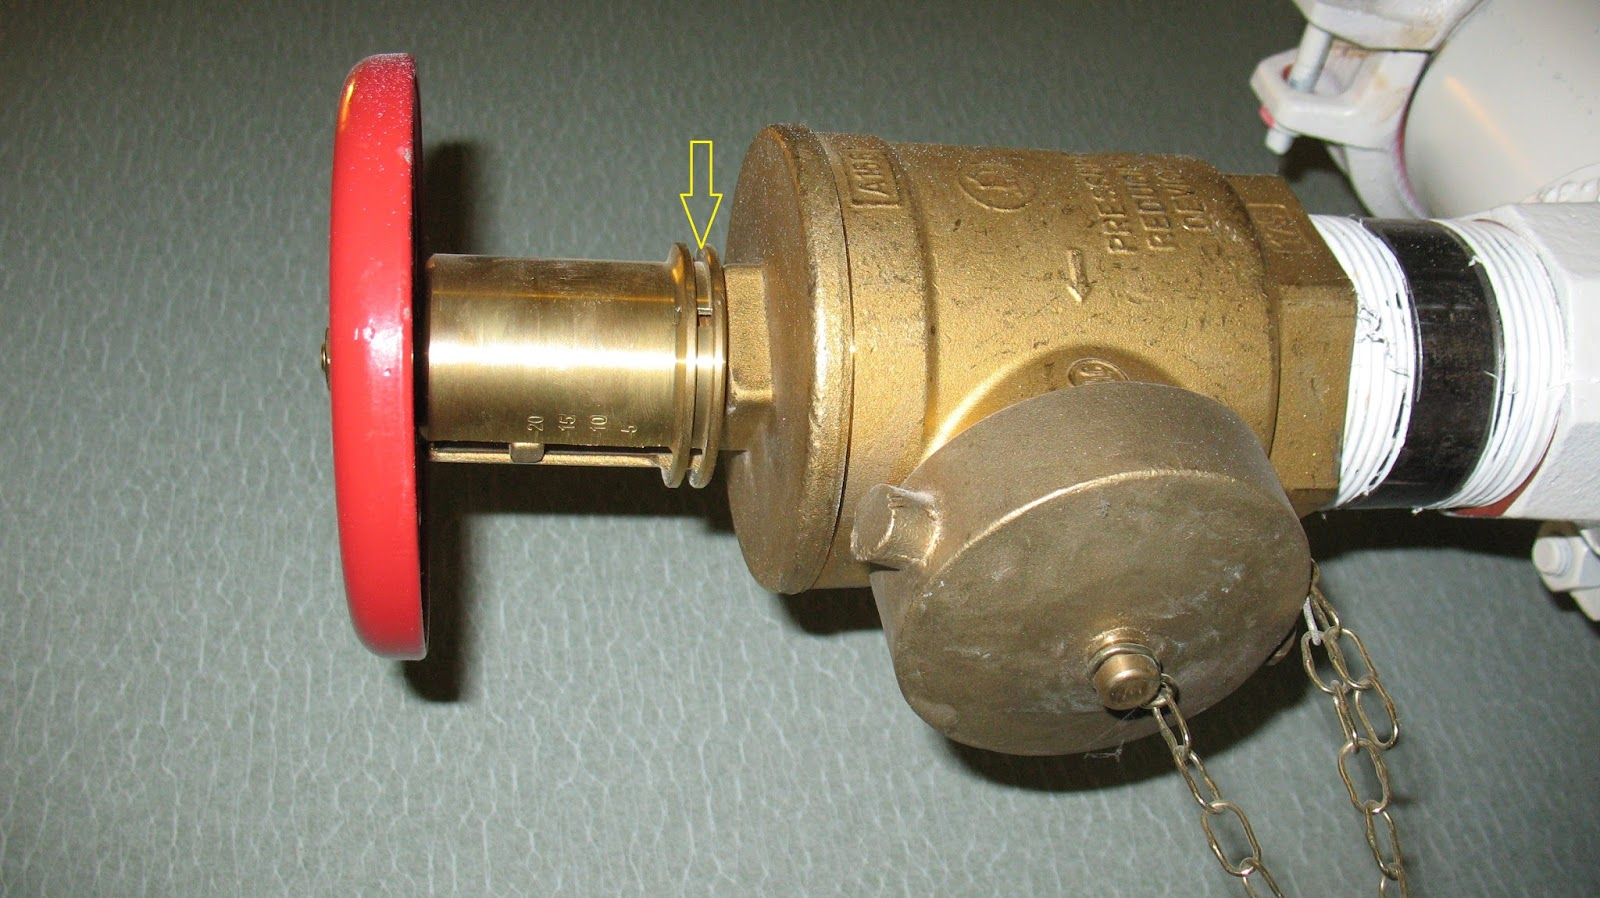 Fire Protection Deficiencies On Standpipes